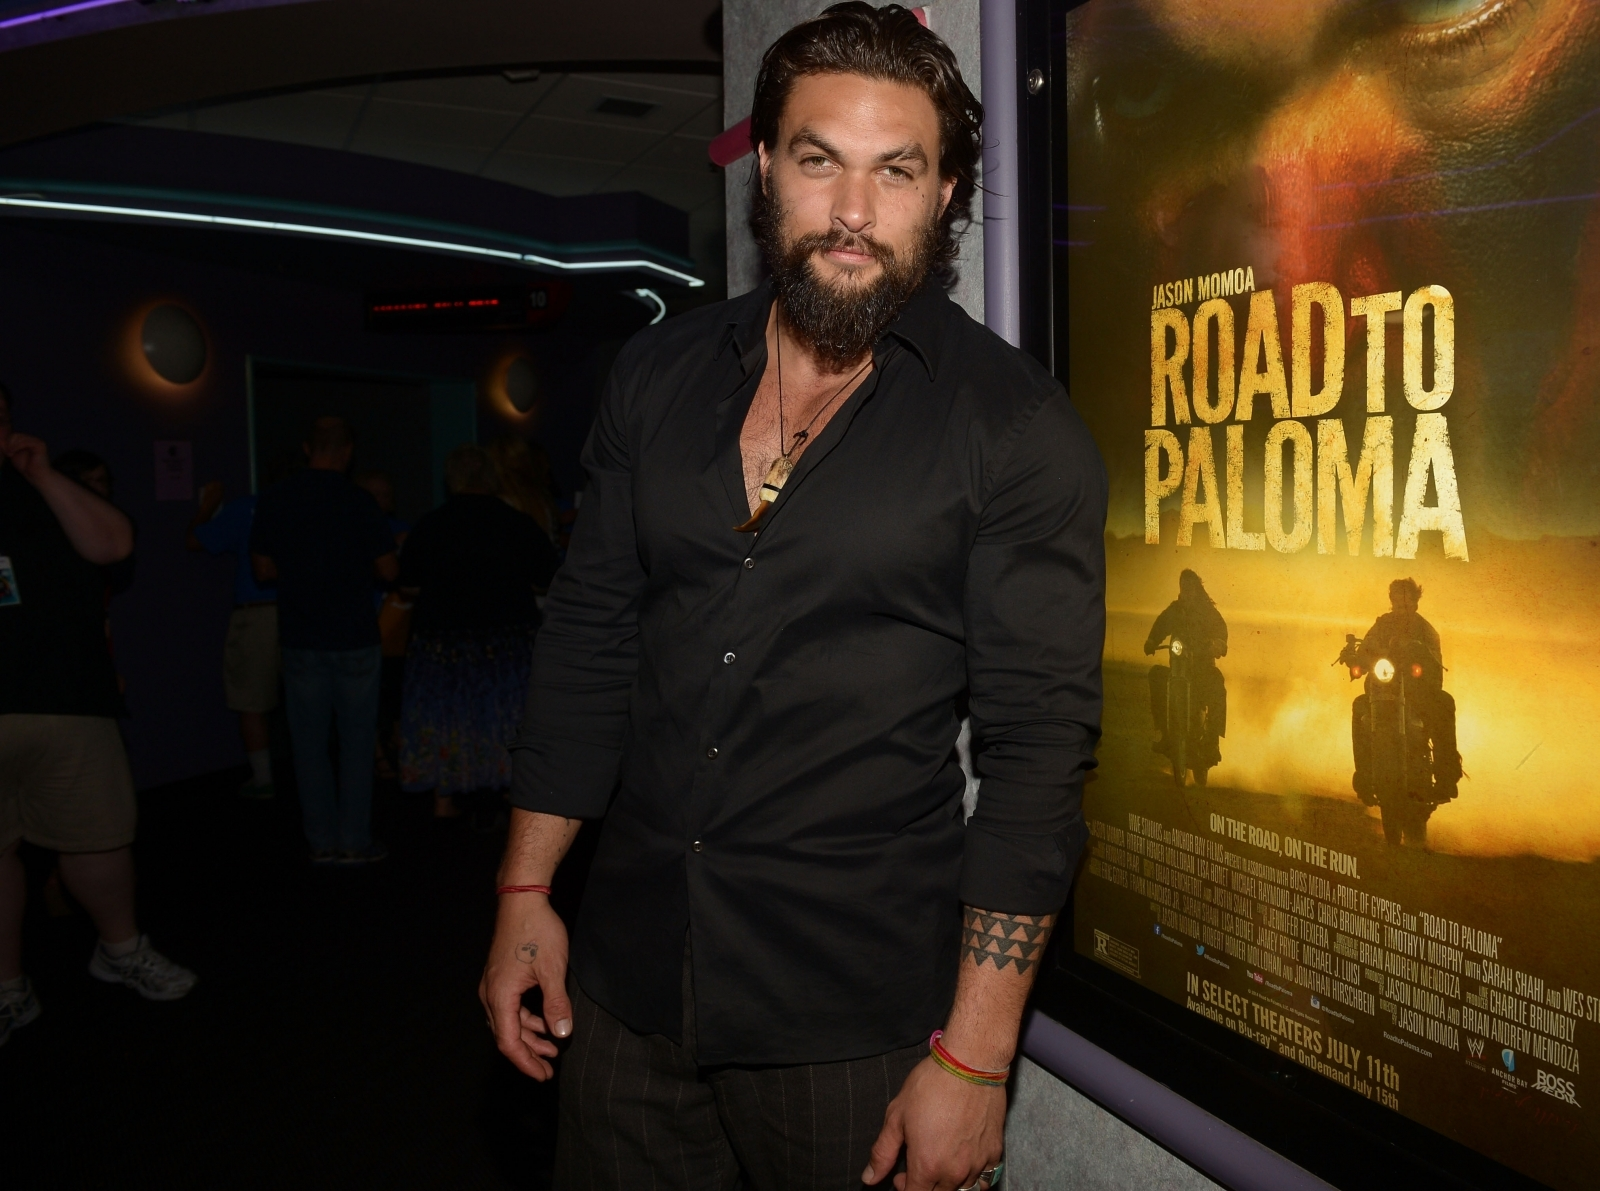 Jason Momoa has apologized for his joke about raping women